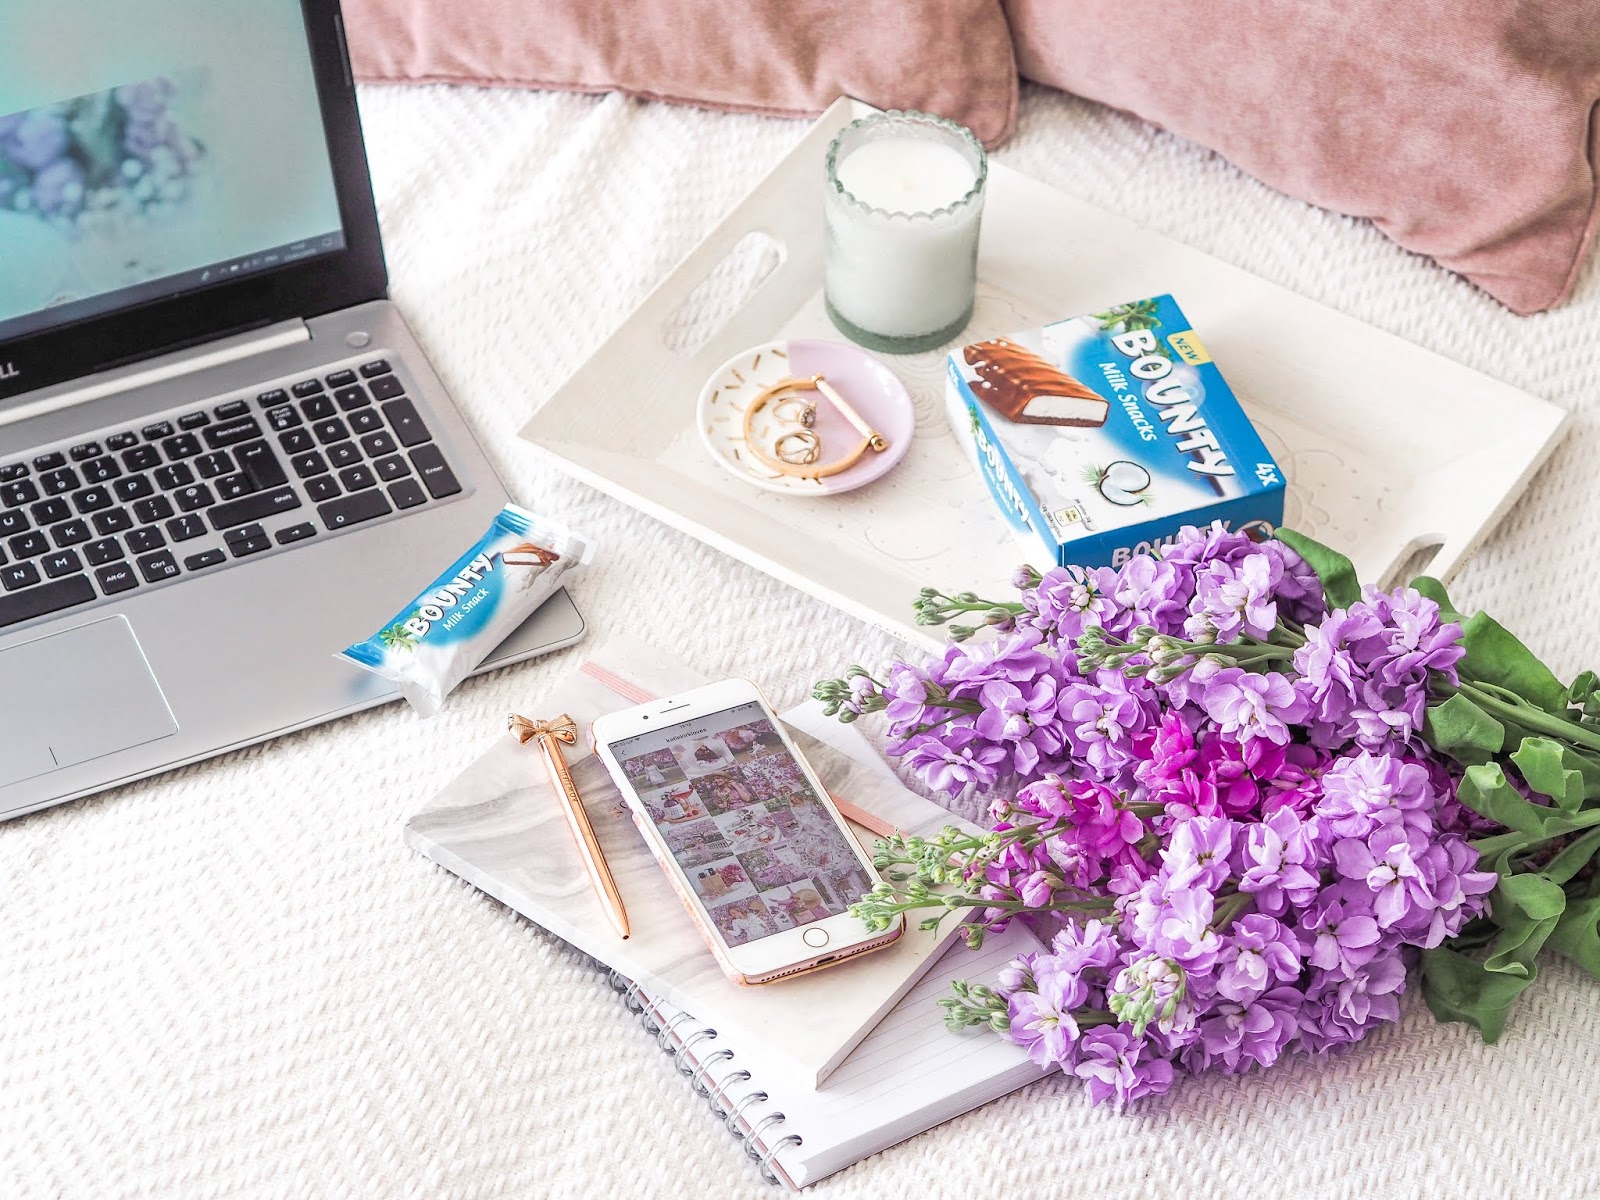 5 Ways I'm Taking A Break This Summer, Katie Kirk Loves, UK Blogger, Lifestyle Blogger, Bounty Milk Snacks, Take A Break, Freelance Blogger